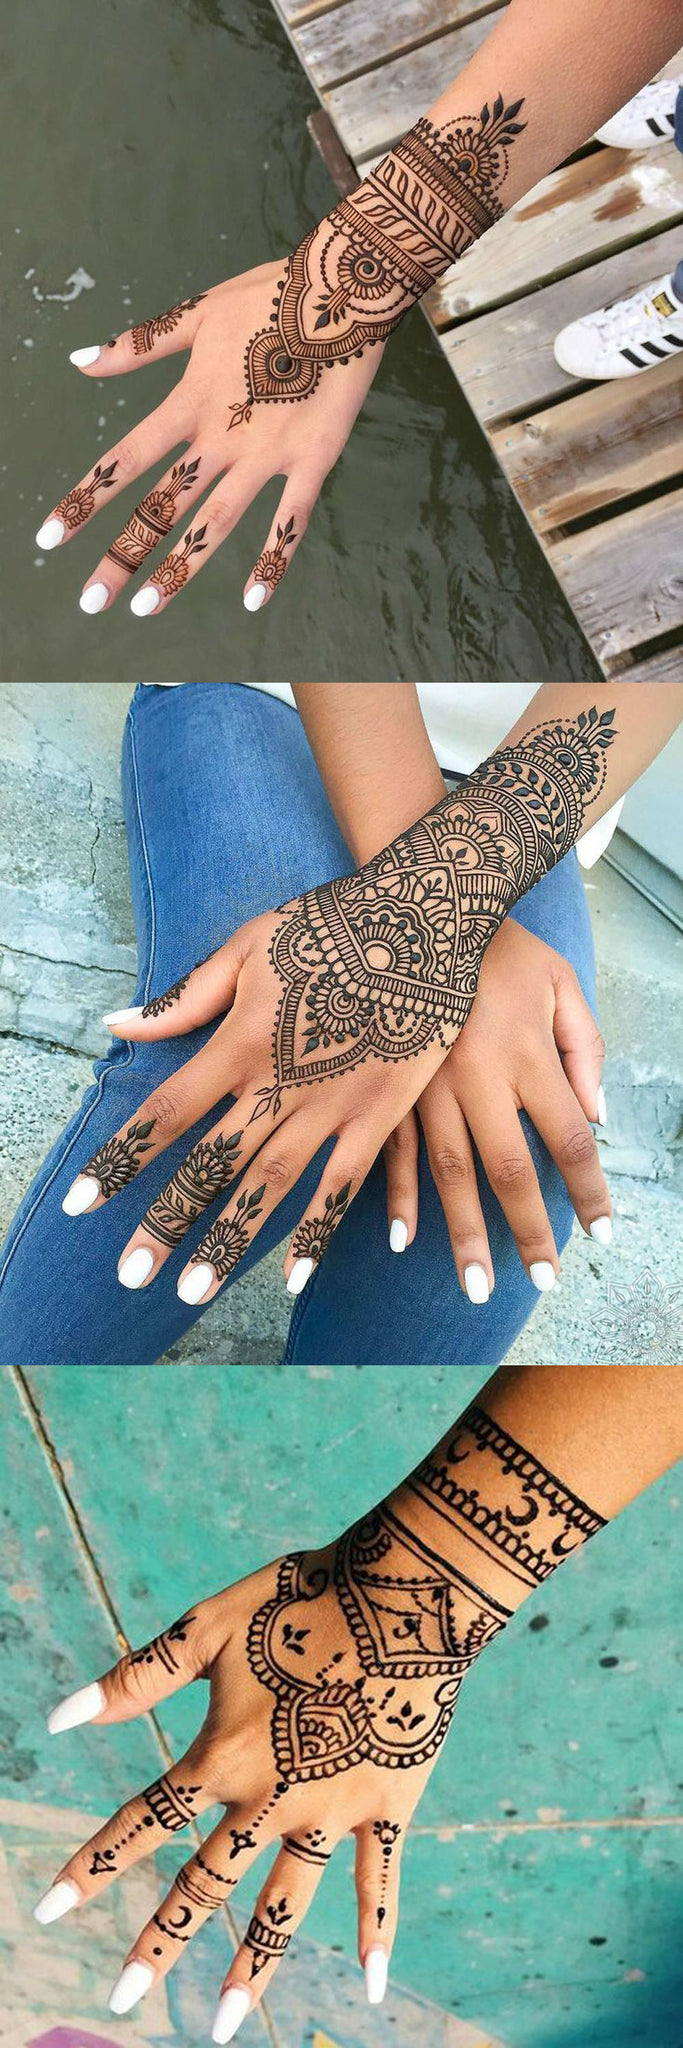 Black Hand Henna Mandala Tattoo Design Ideas with Meaning for Women -  mano Ideas de tatuaje con significado para las mujeres - www.MyBodiArt.com